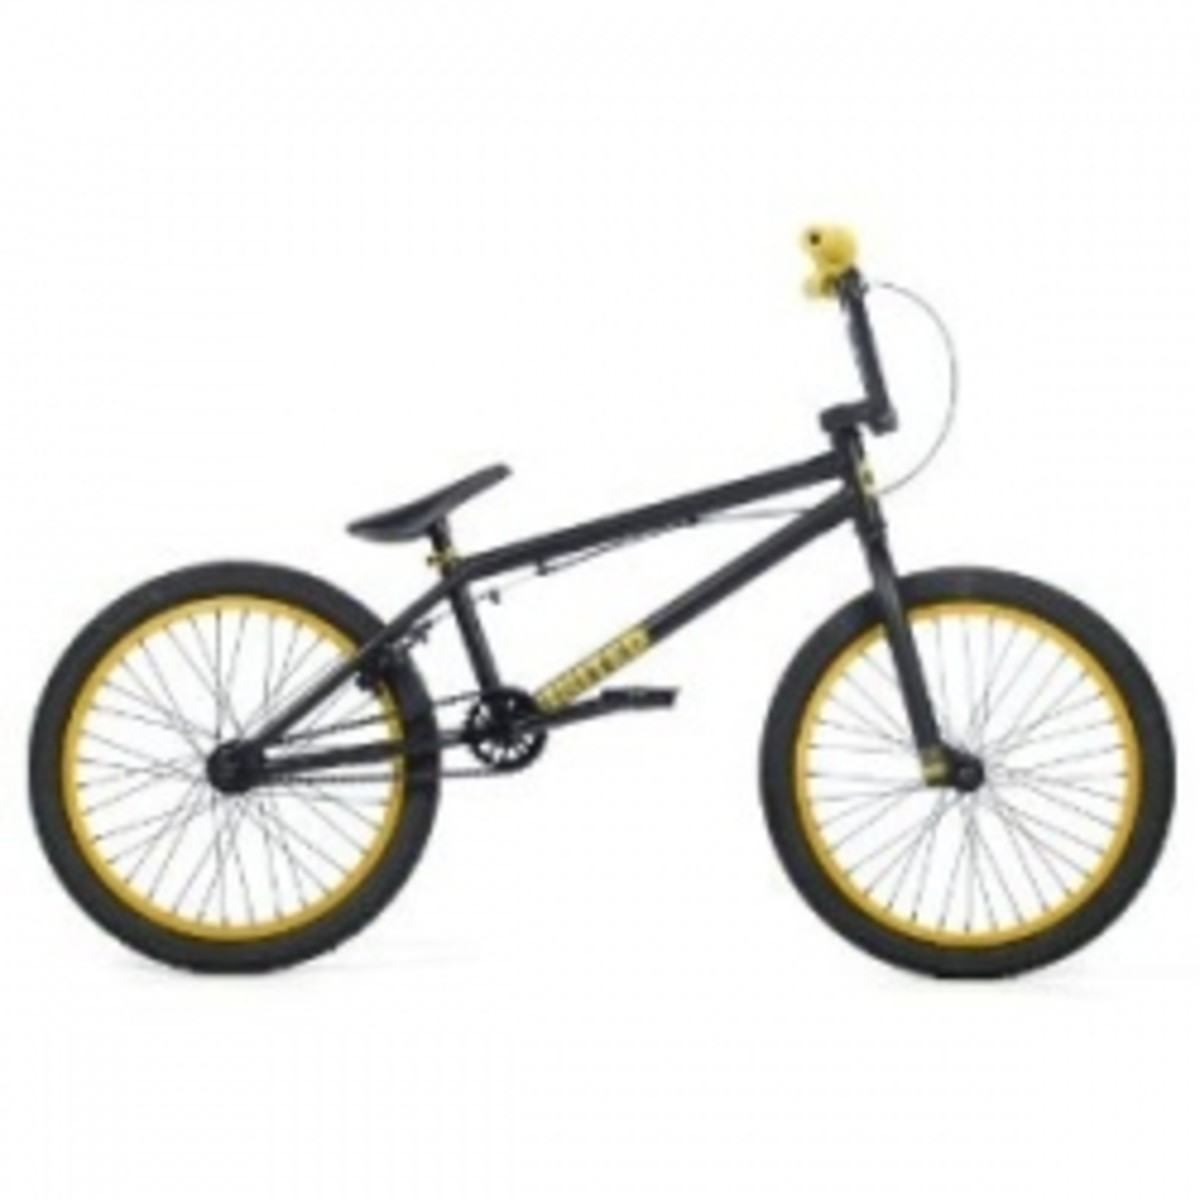 Best Value BMX Bikes for Kids 2017